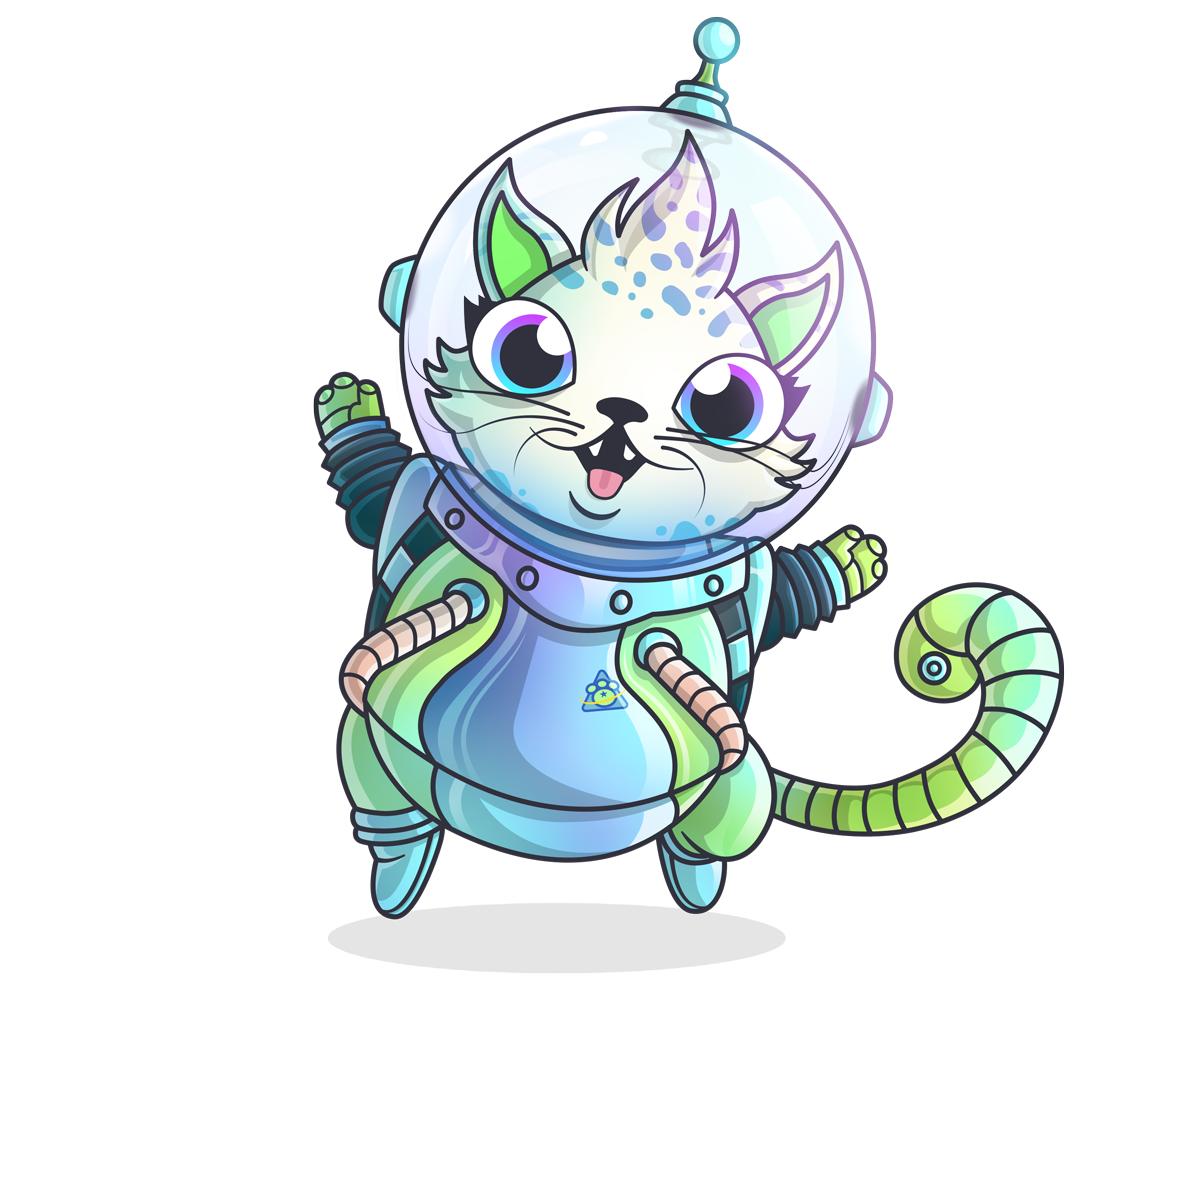 cryptokitty #1819422